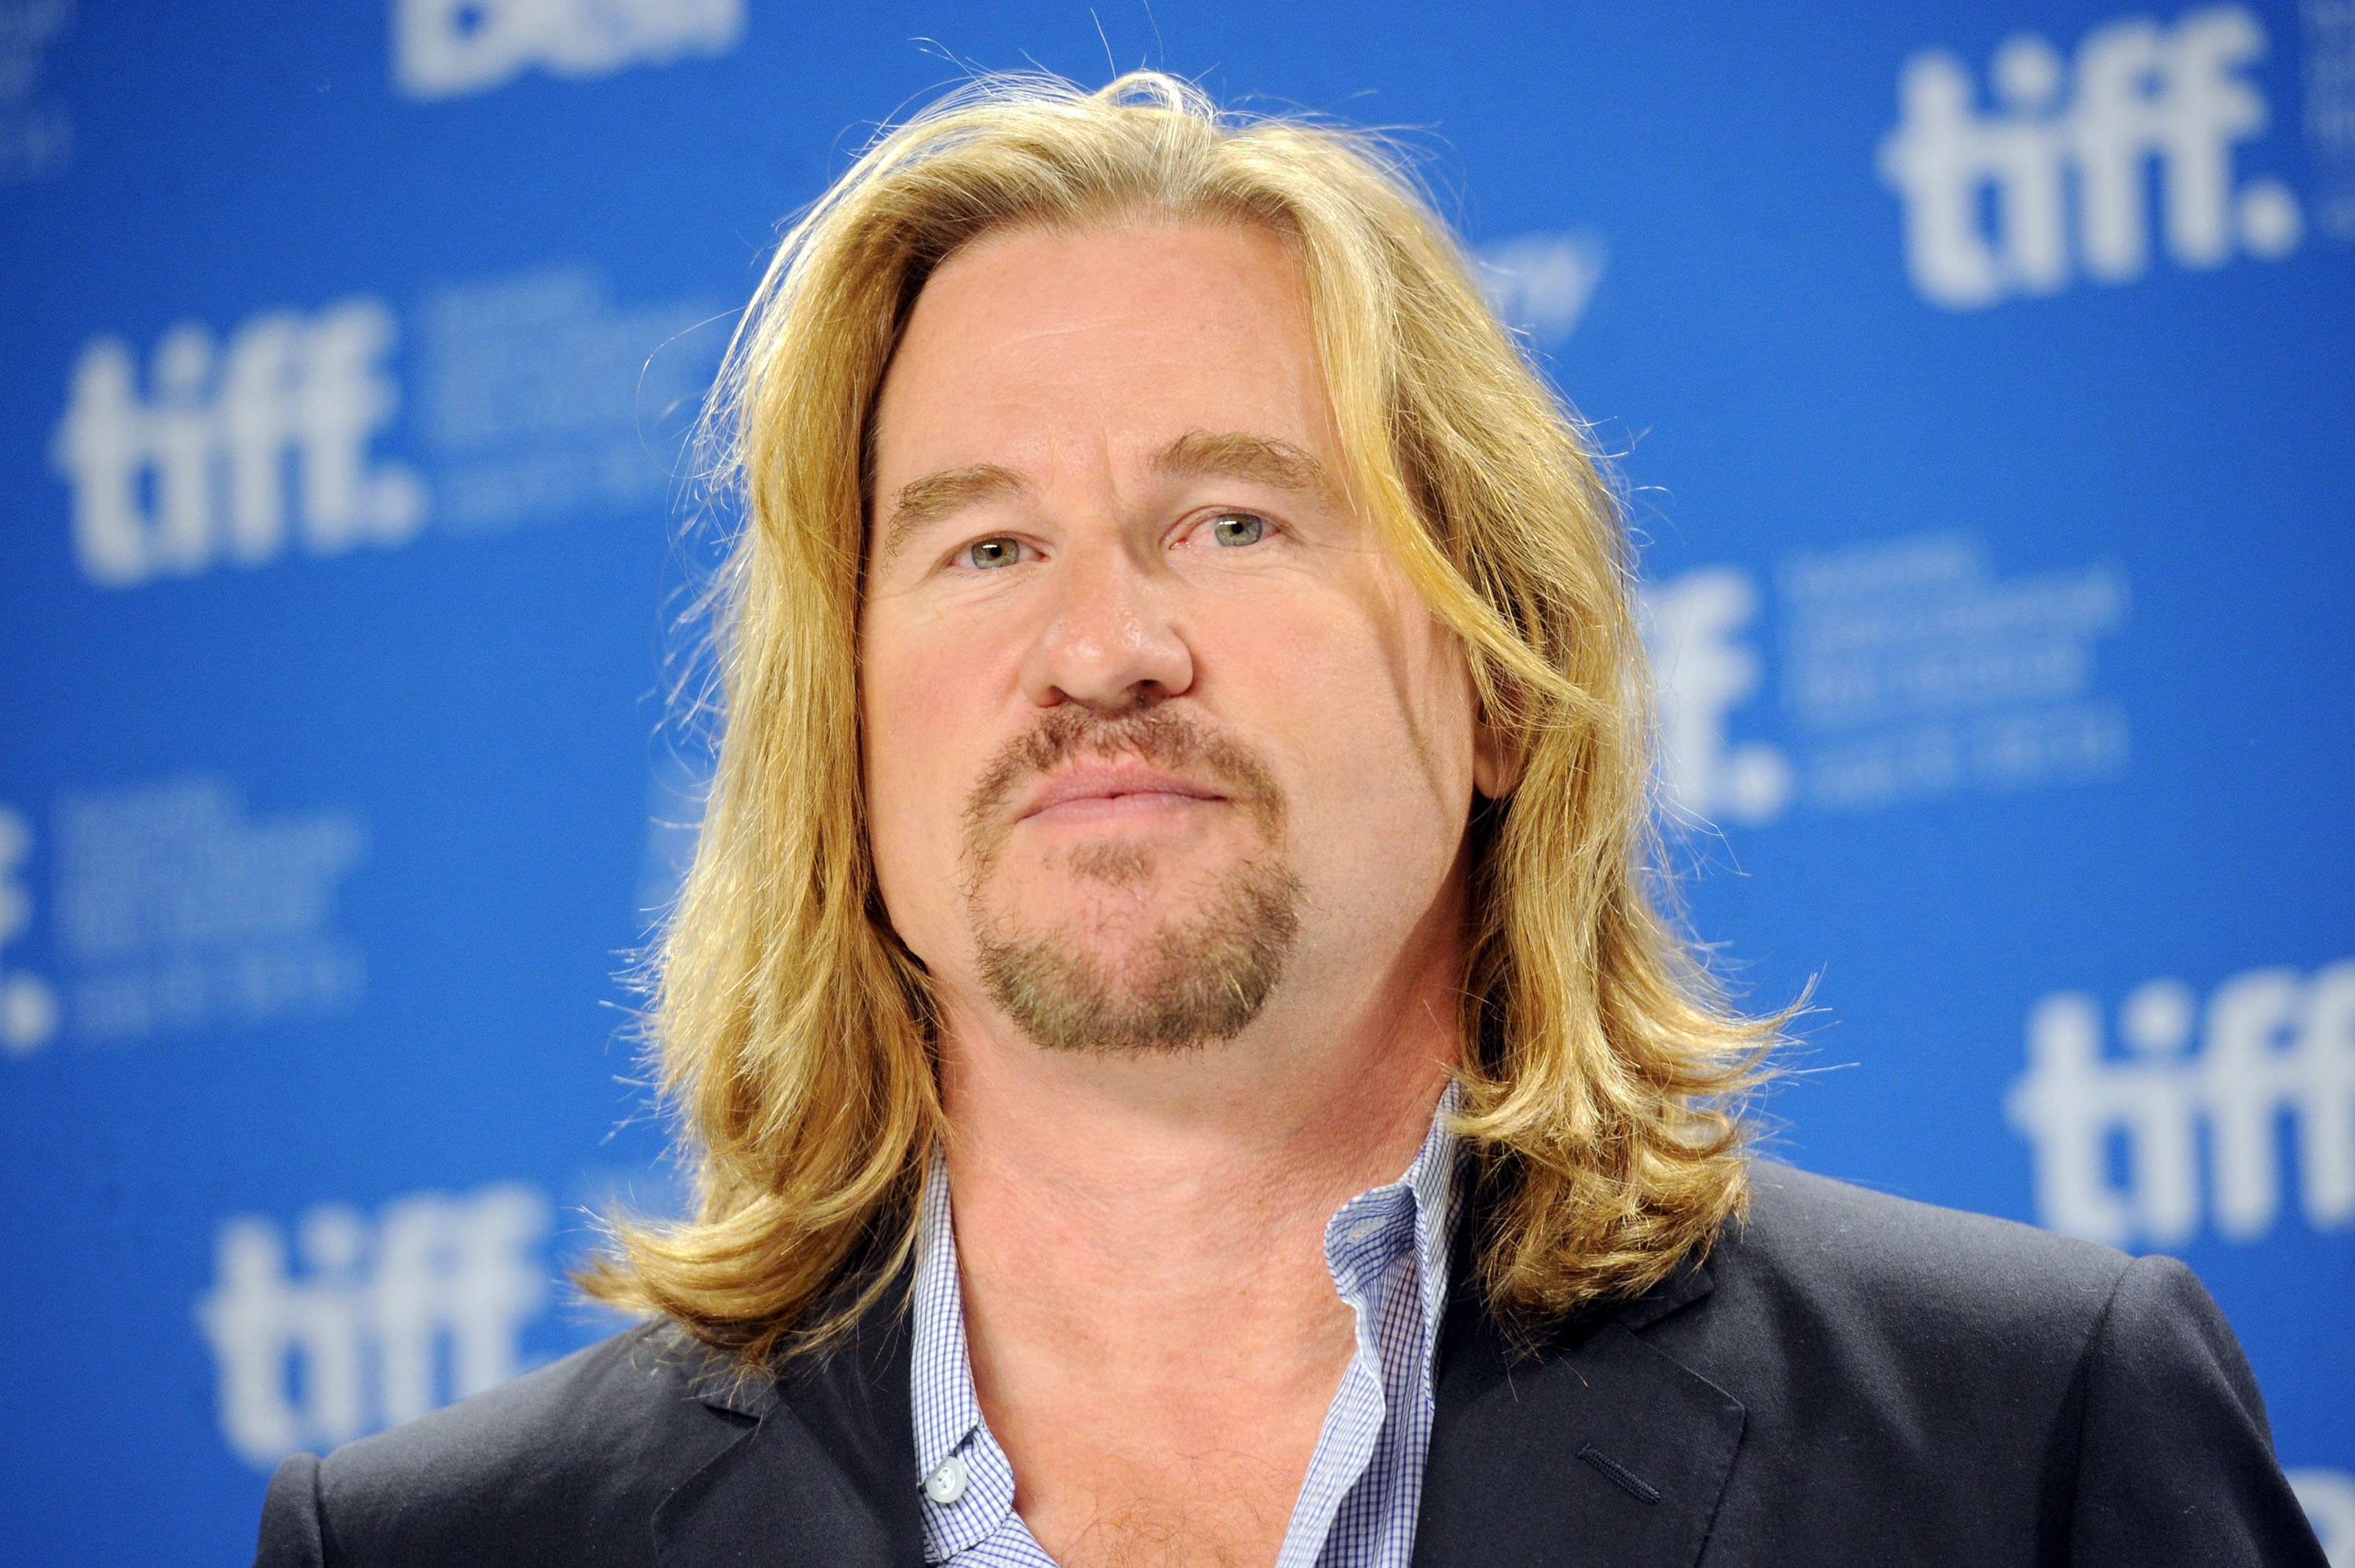 Val Kilmer speaks onstage at the 'Twixt' press conference during the 2011 Toronto International Film Festival at TIFF Bell Lightbox on September 12, 2011 in Toronto